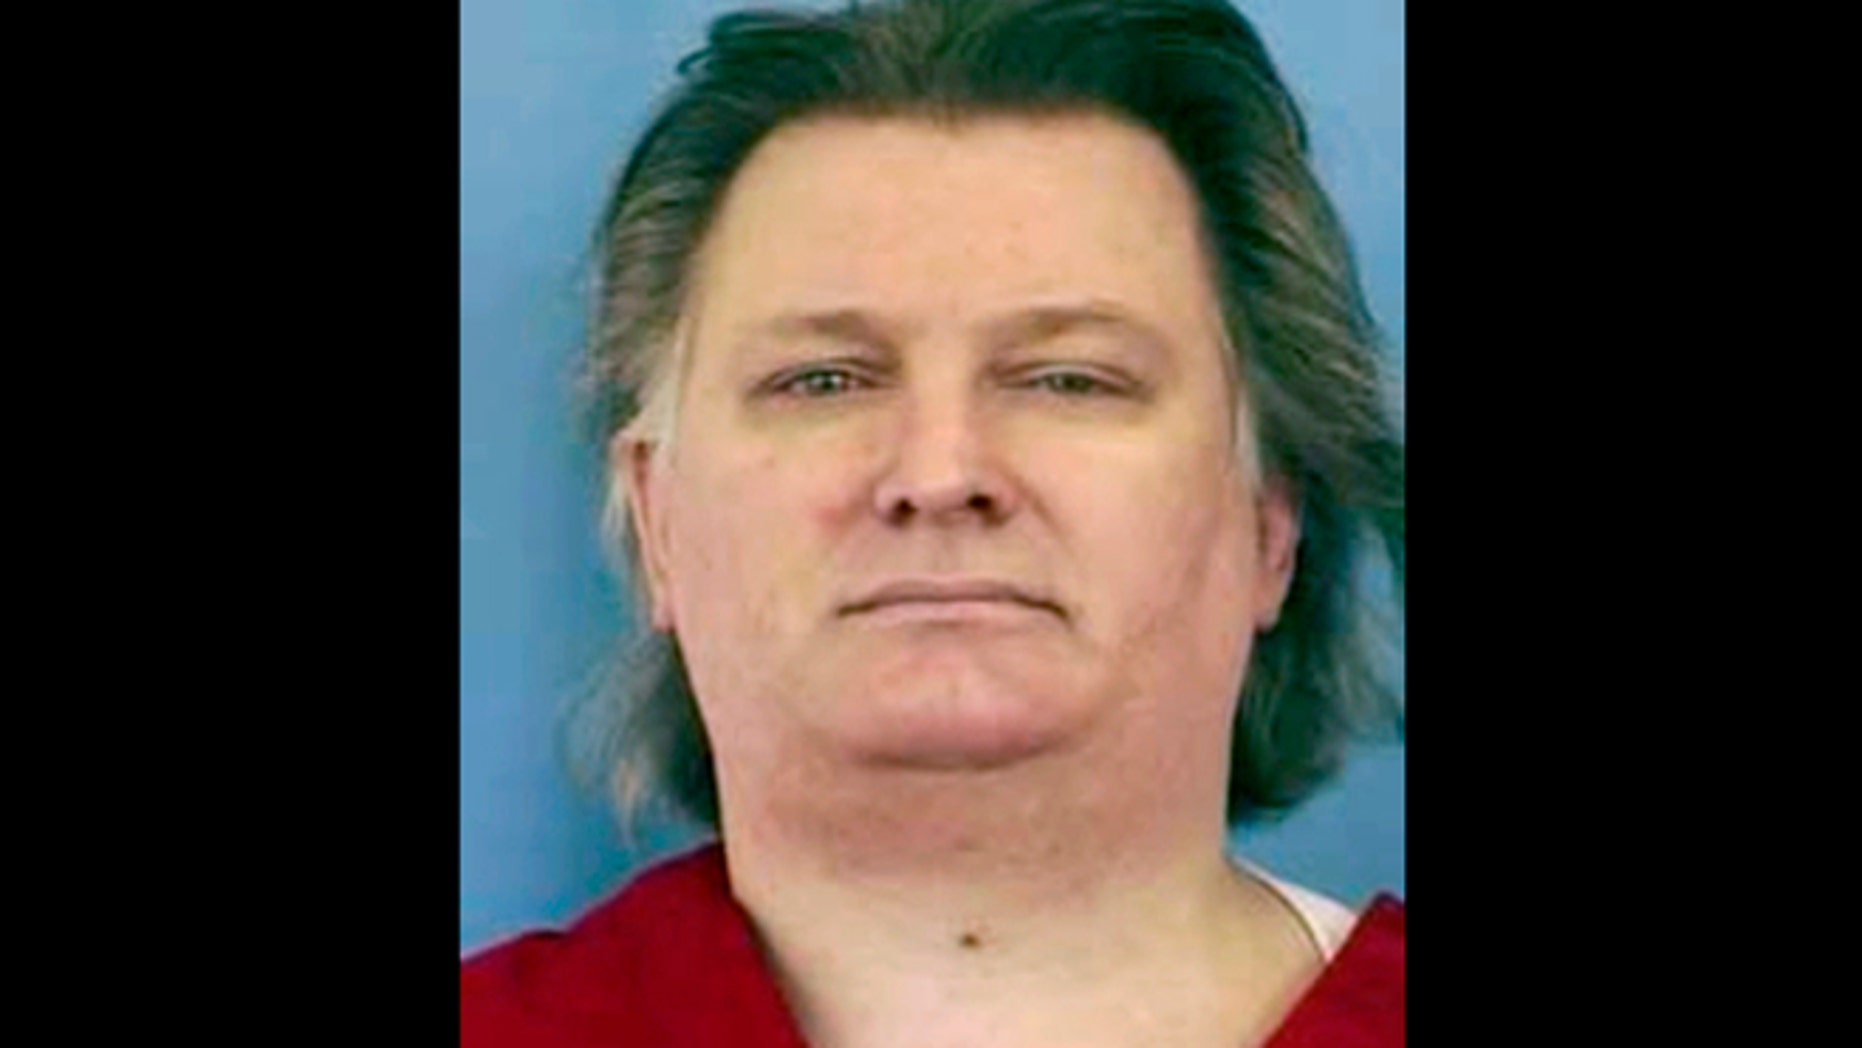 April 14, 2008: Photograph provided by the Mississippi Department of Corrections of death row inmate Gary Carl Simmons Jr., who is scheduled for execution Wednesday, June 20, 2012, for the 1996 shooting and dismembering of a man in Pascagoula, Miss.